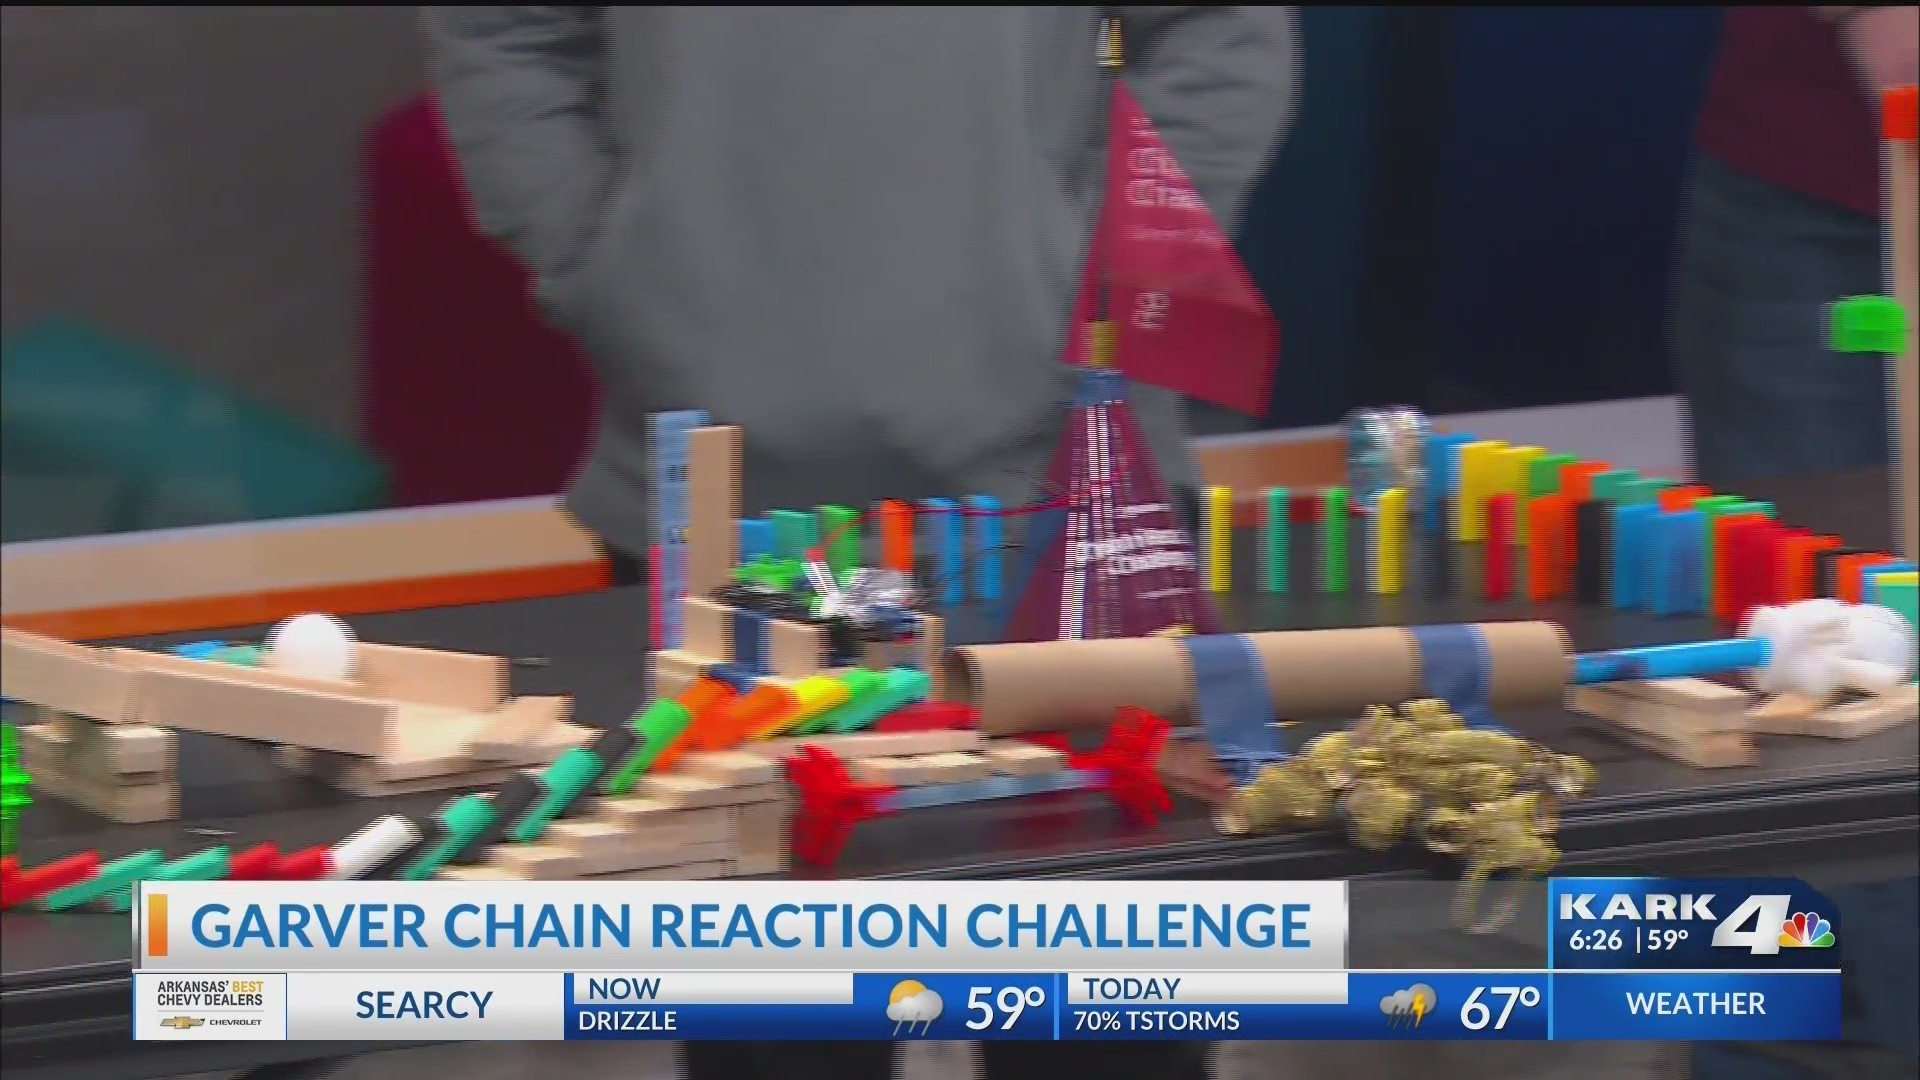 Garver Chain Reaction Challenge